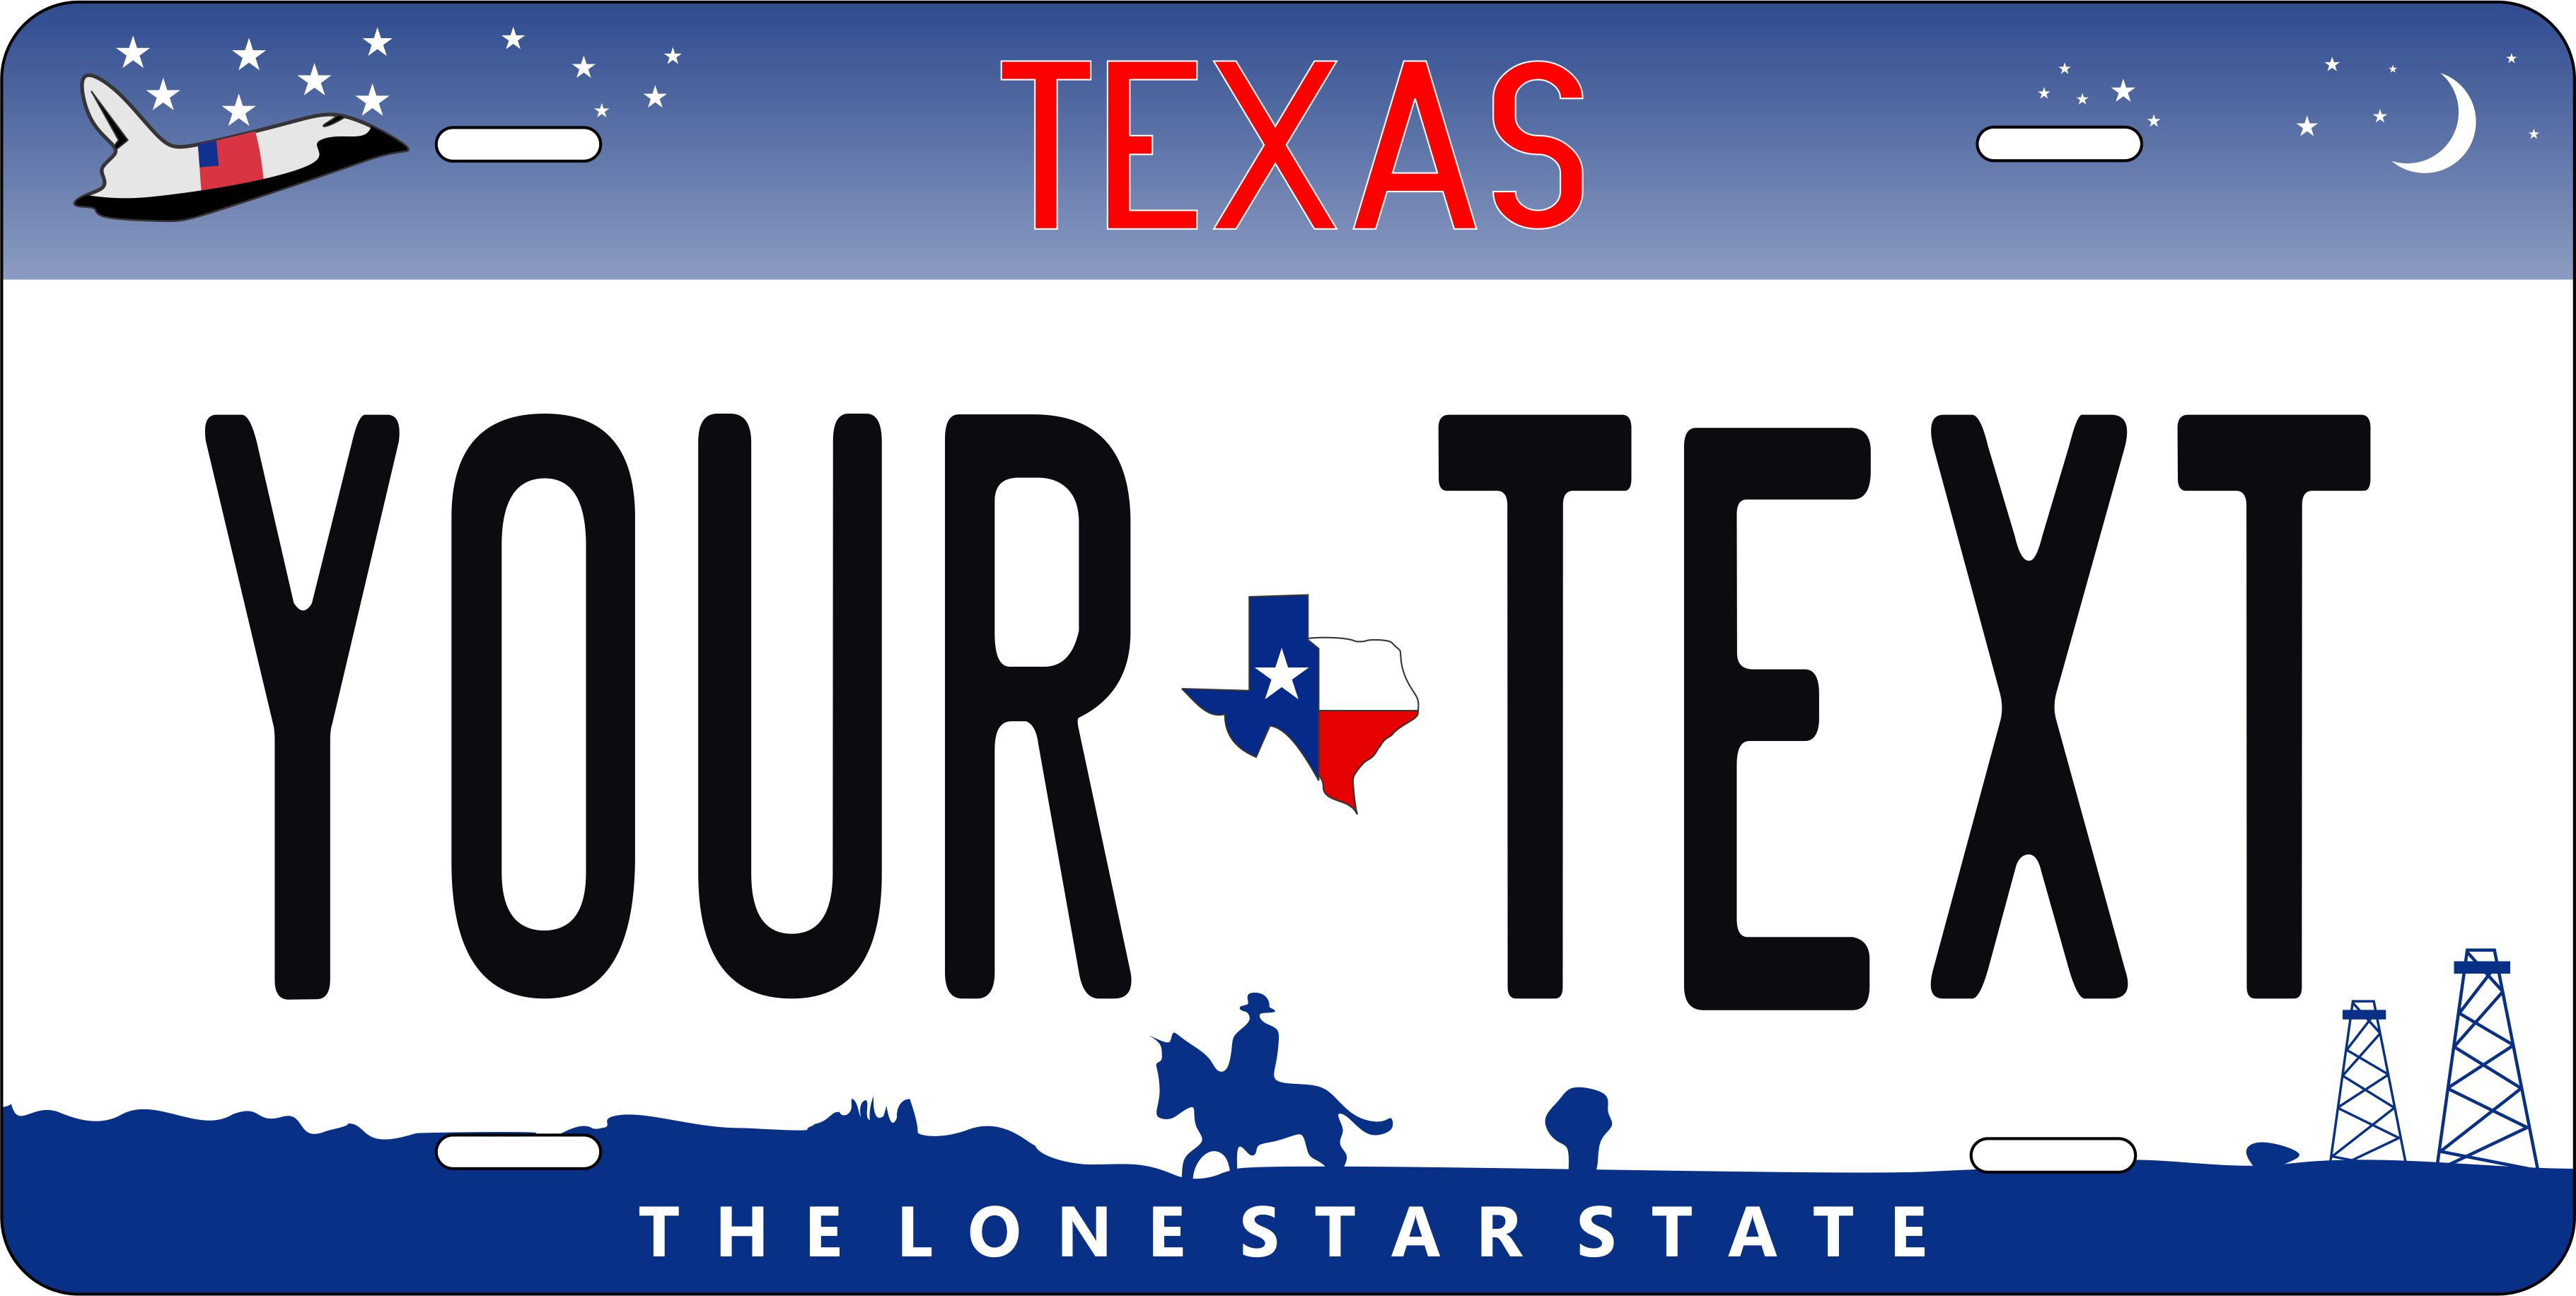 Texas 2008 – The Lone Star State | Photo Zone